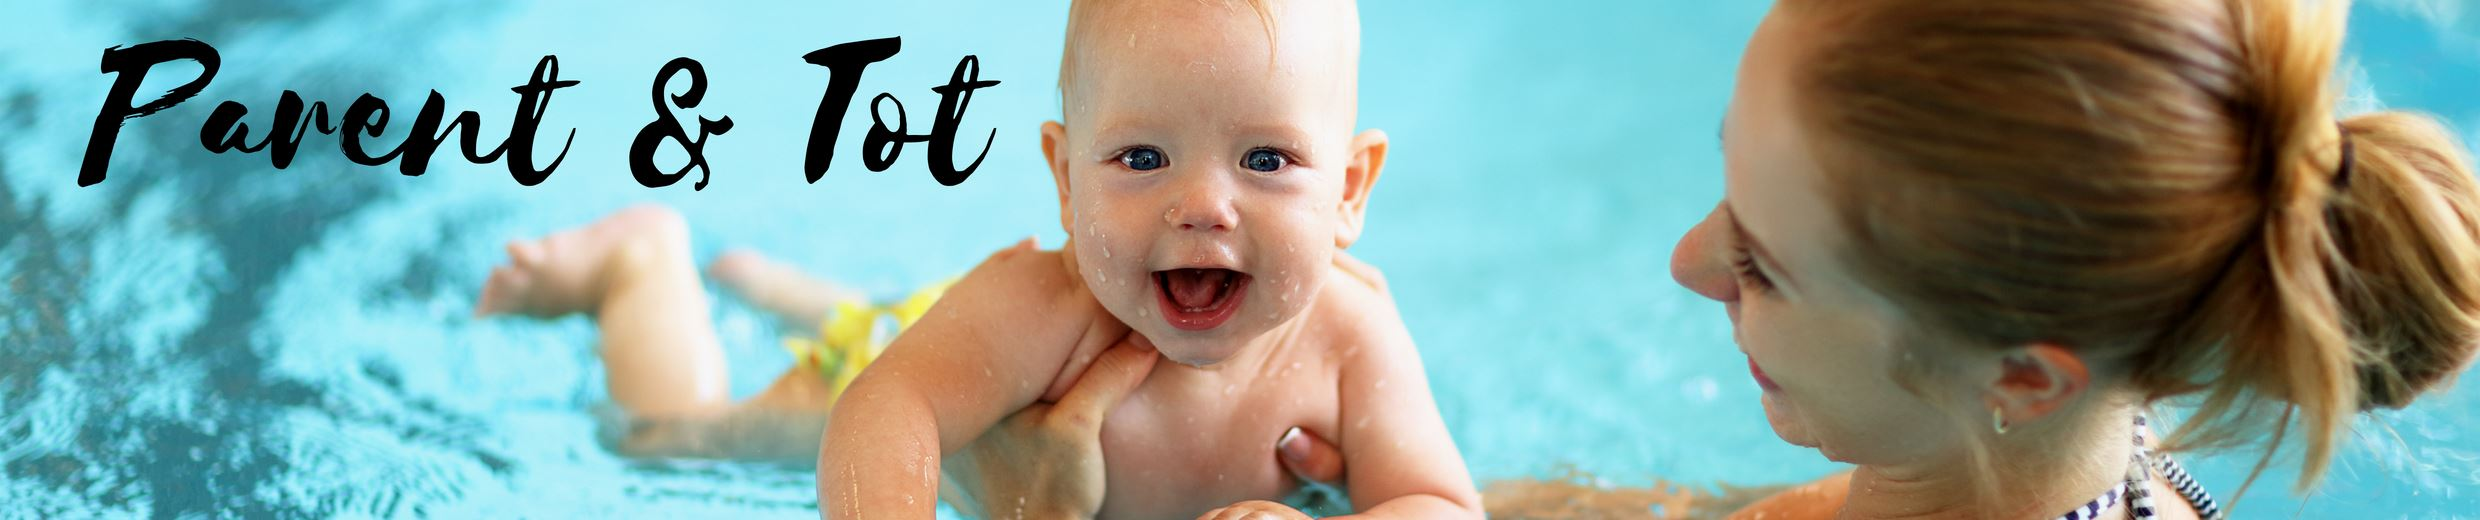 """Parent and Tot Swim Lesson""  banner with image of baby in pool"